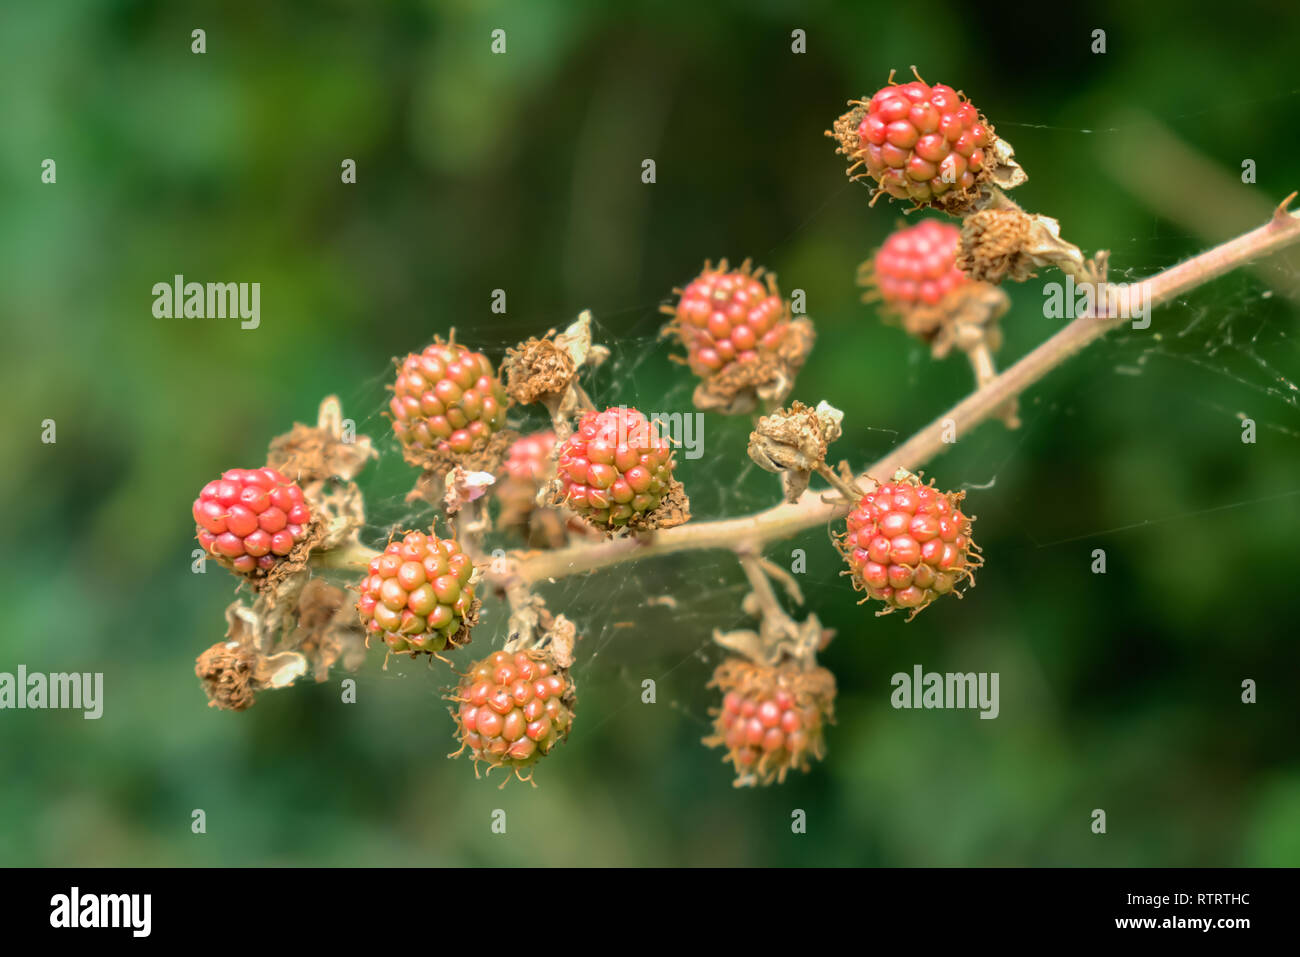 Nature and environment concept: Twig of immature blackberries on a green blurred background. - Stock Image